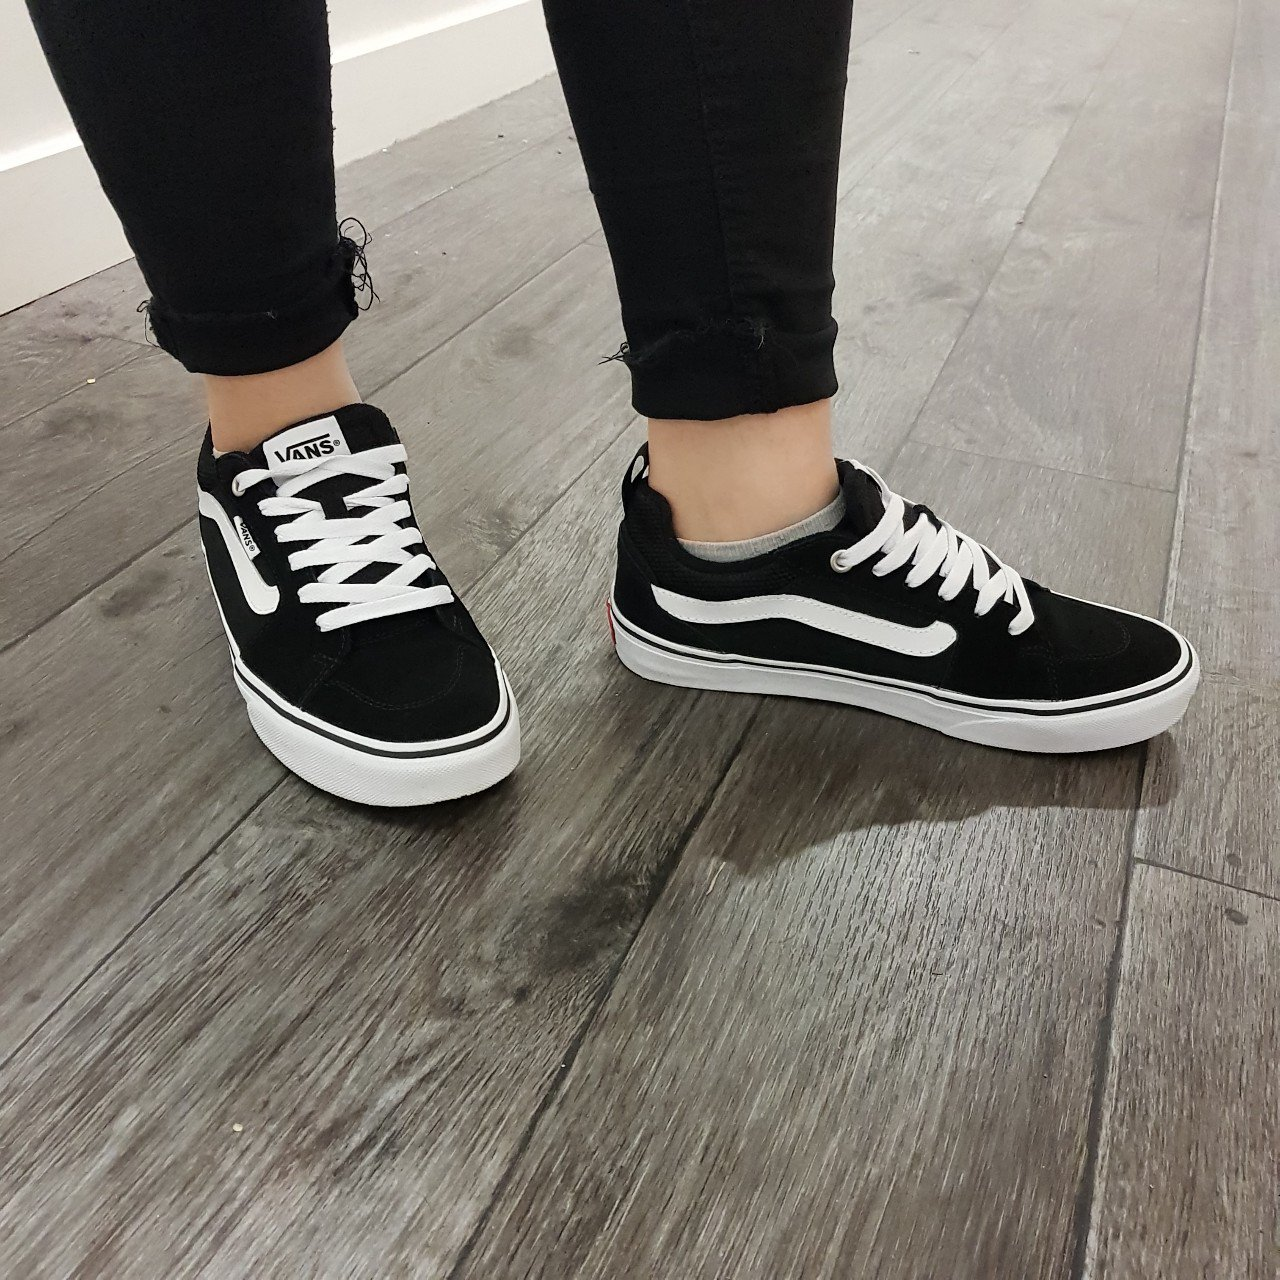 d771952436 Vans Filmore S Snr94 Suede canvas black and white  Worn only - Depop